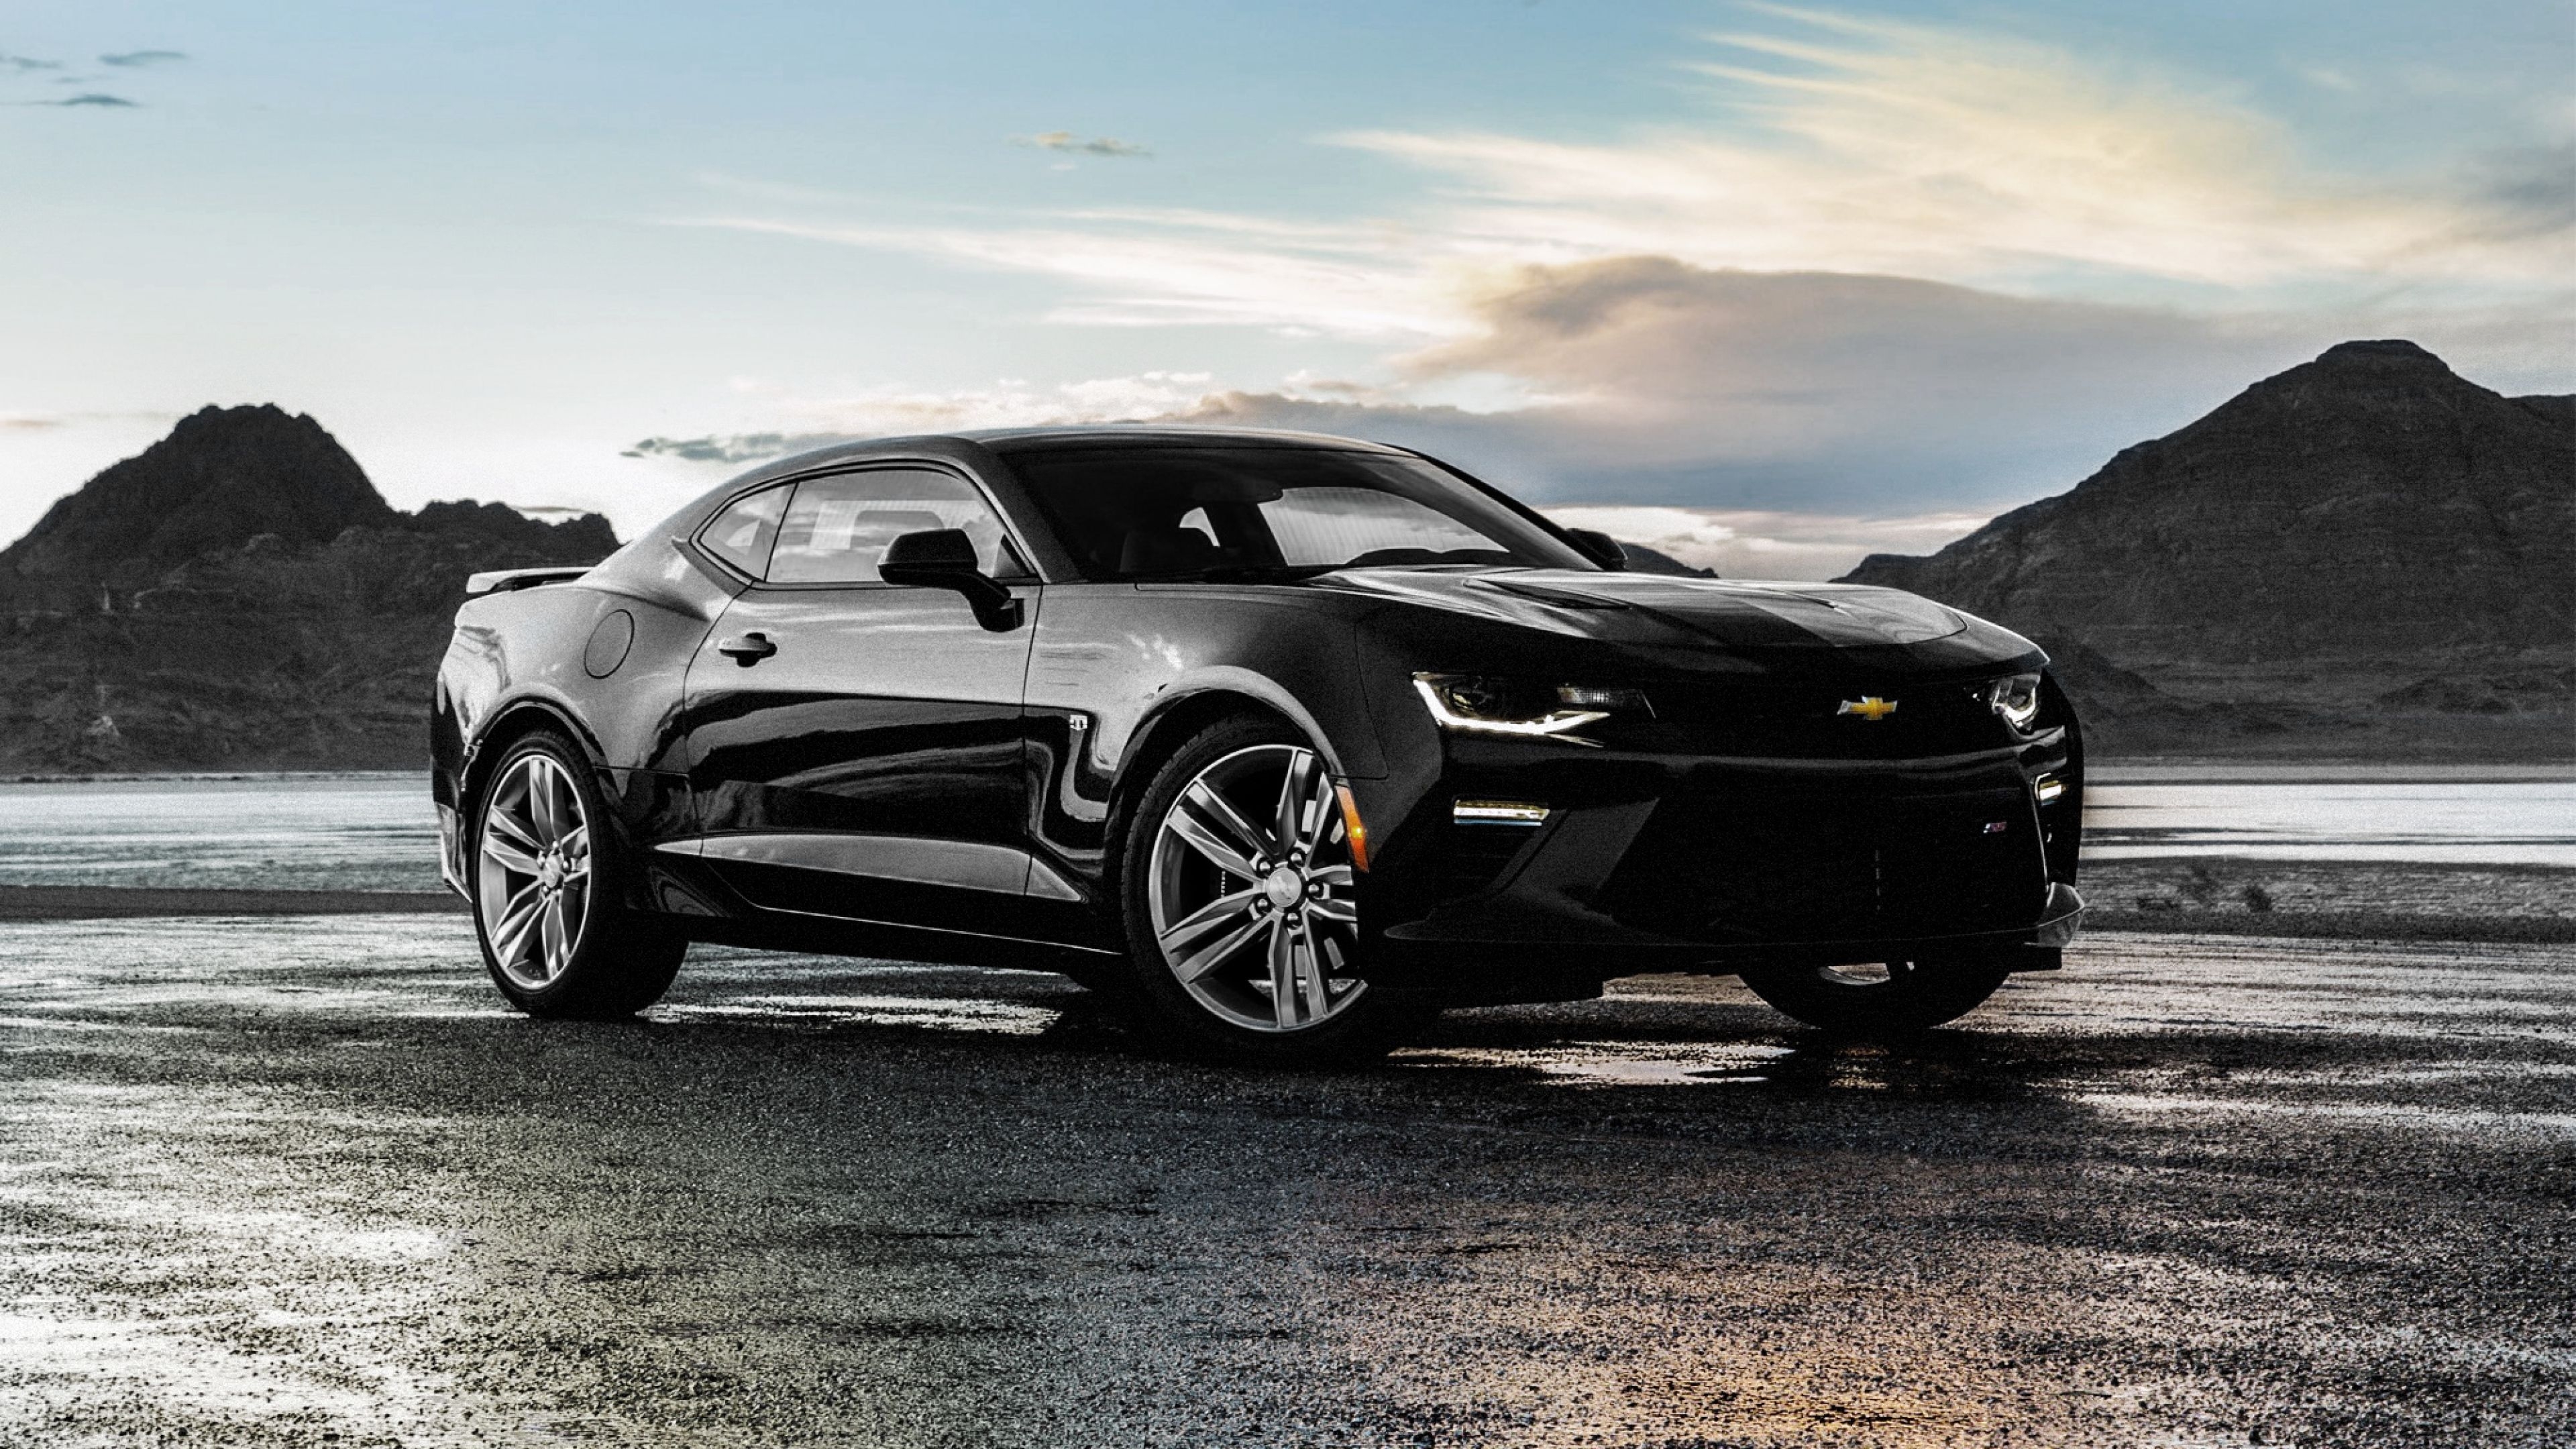 Chevrolet Camaro SS Black, HD Cars, 4k Wallpapers, Image